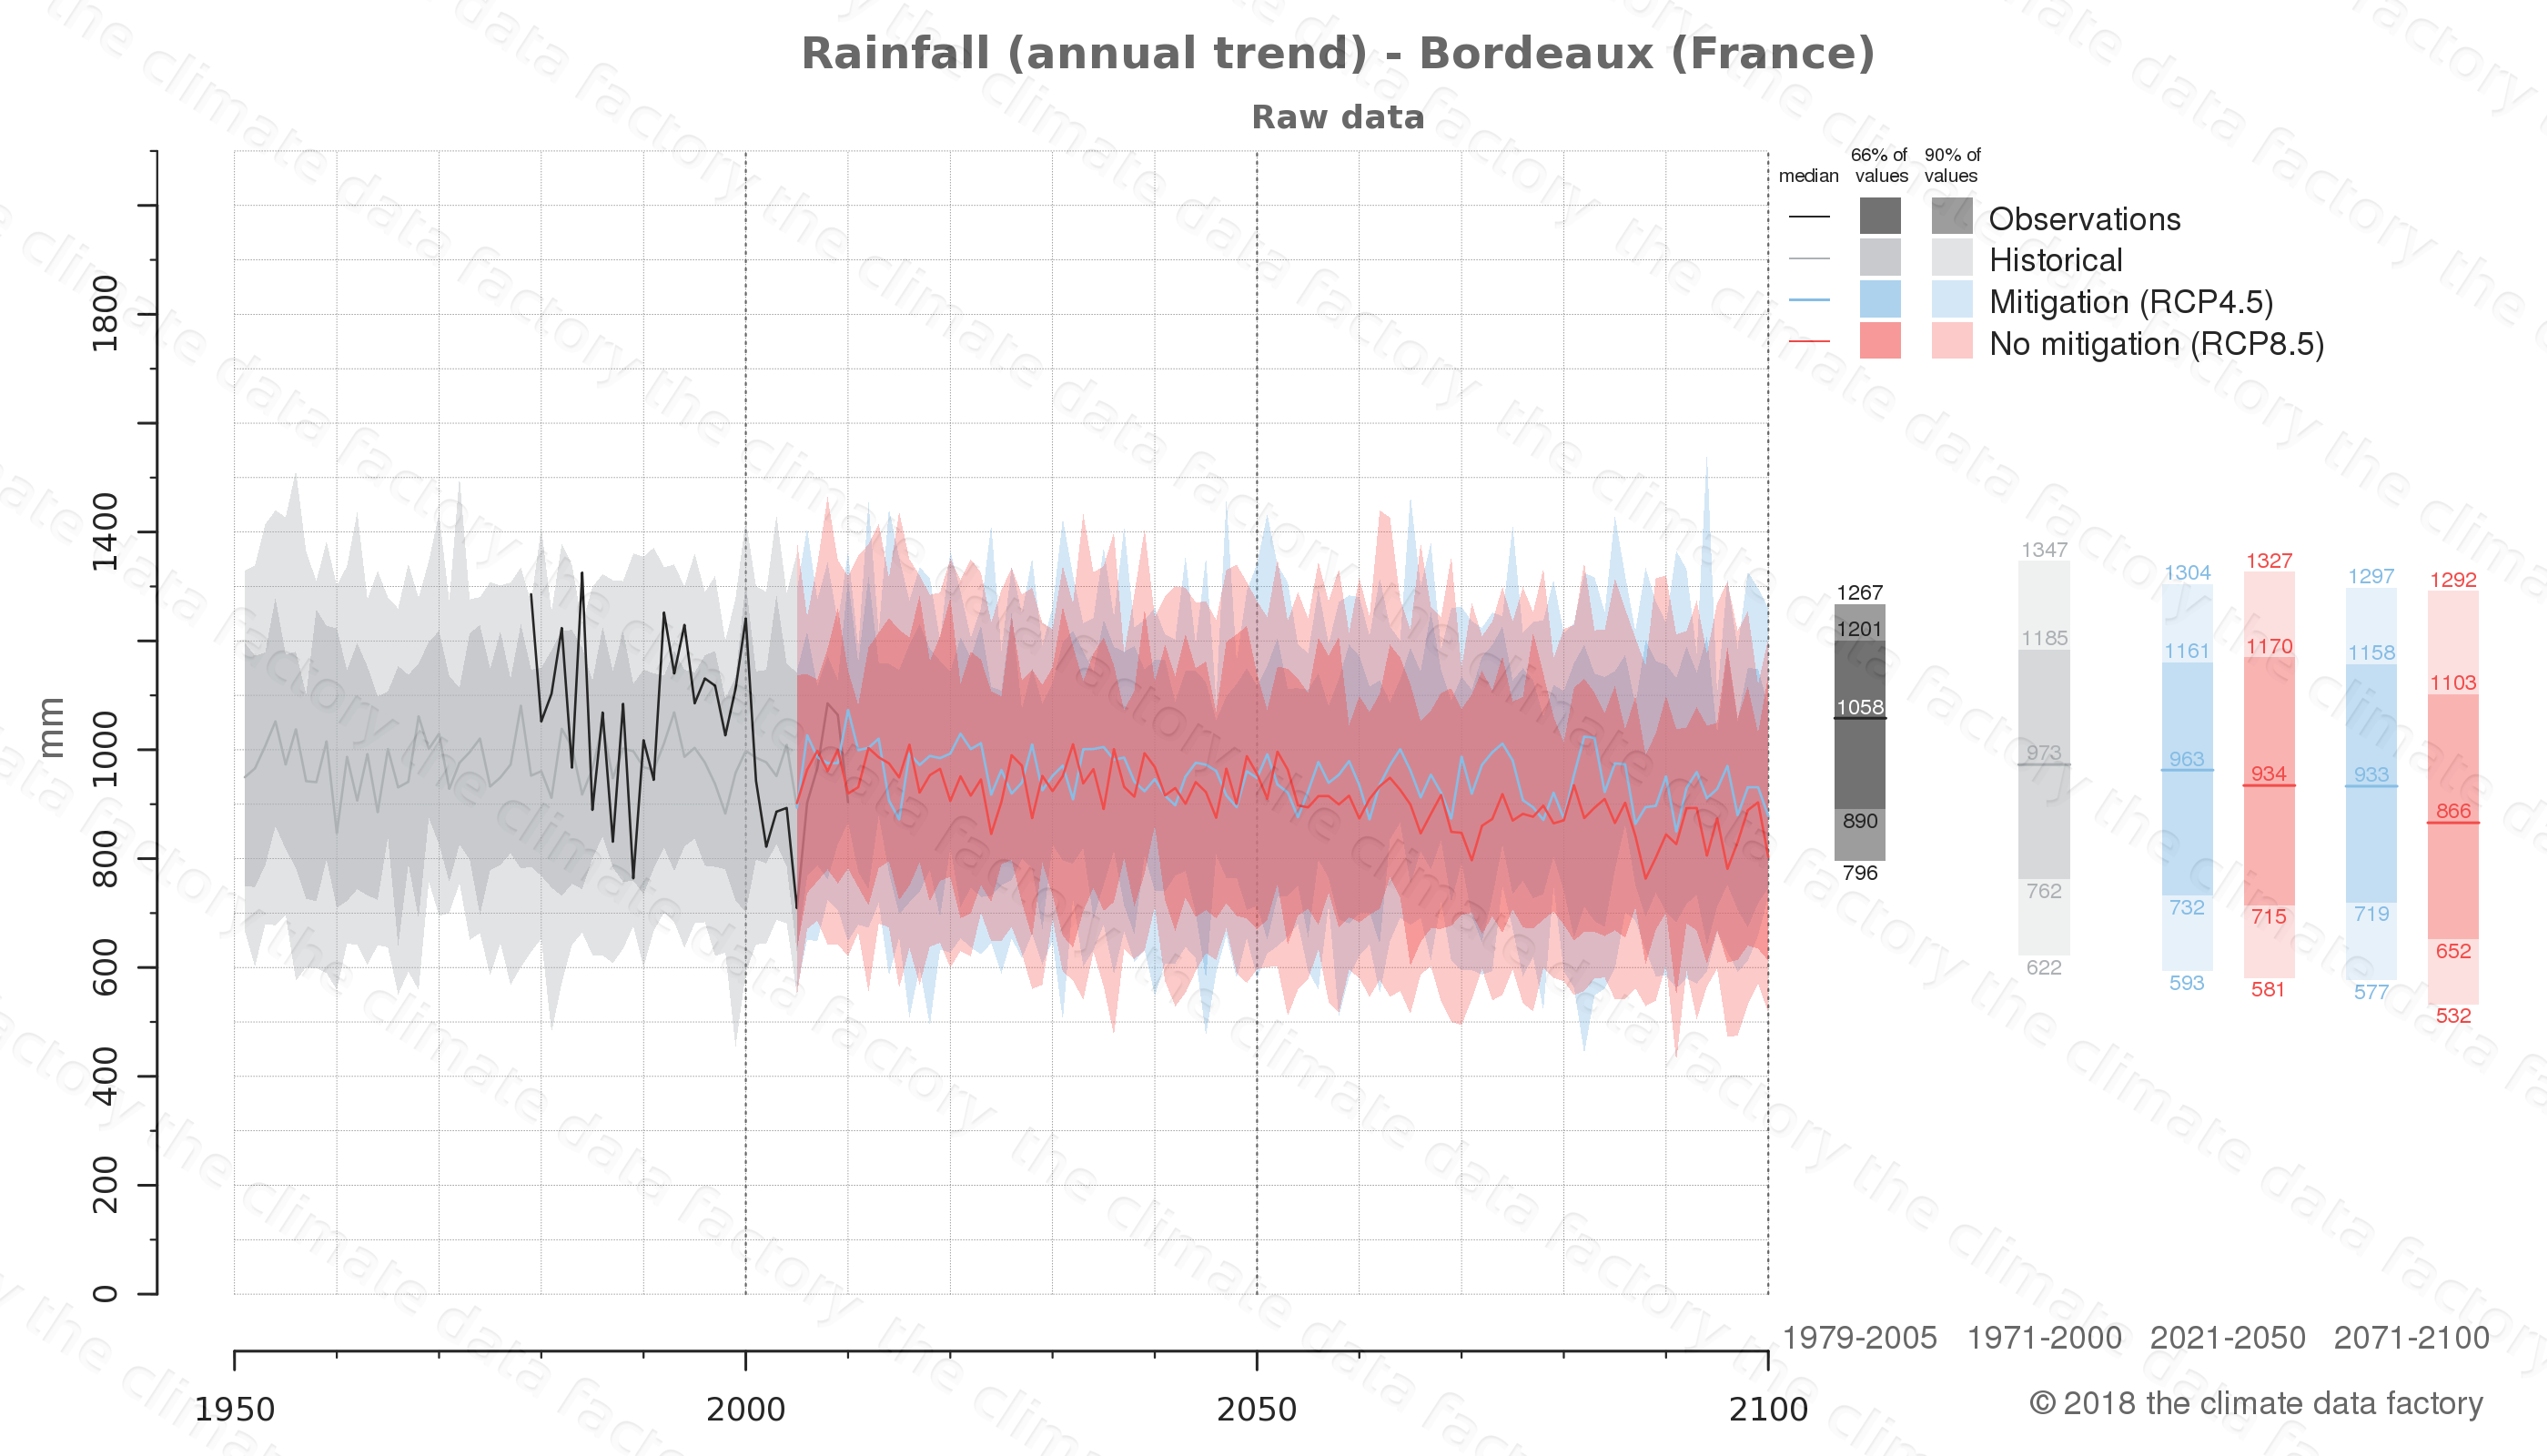 climate change data policy adaptation climate graph city data rainfall bordeaux france